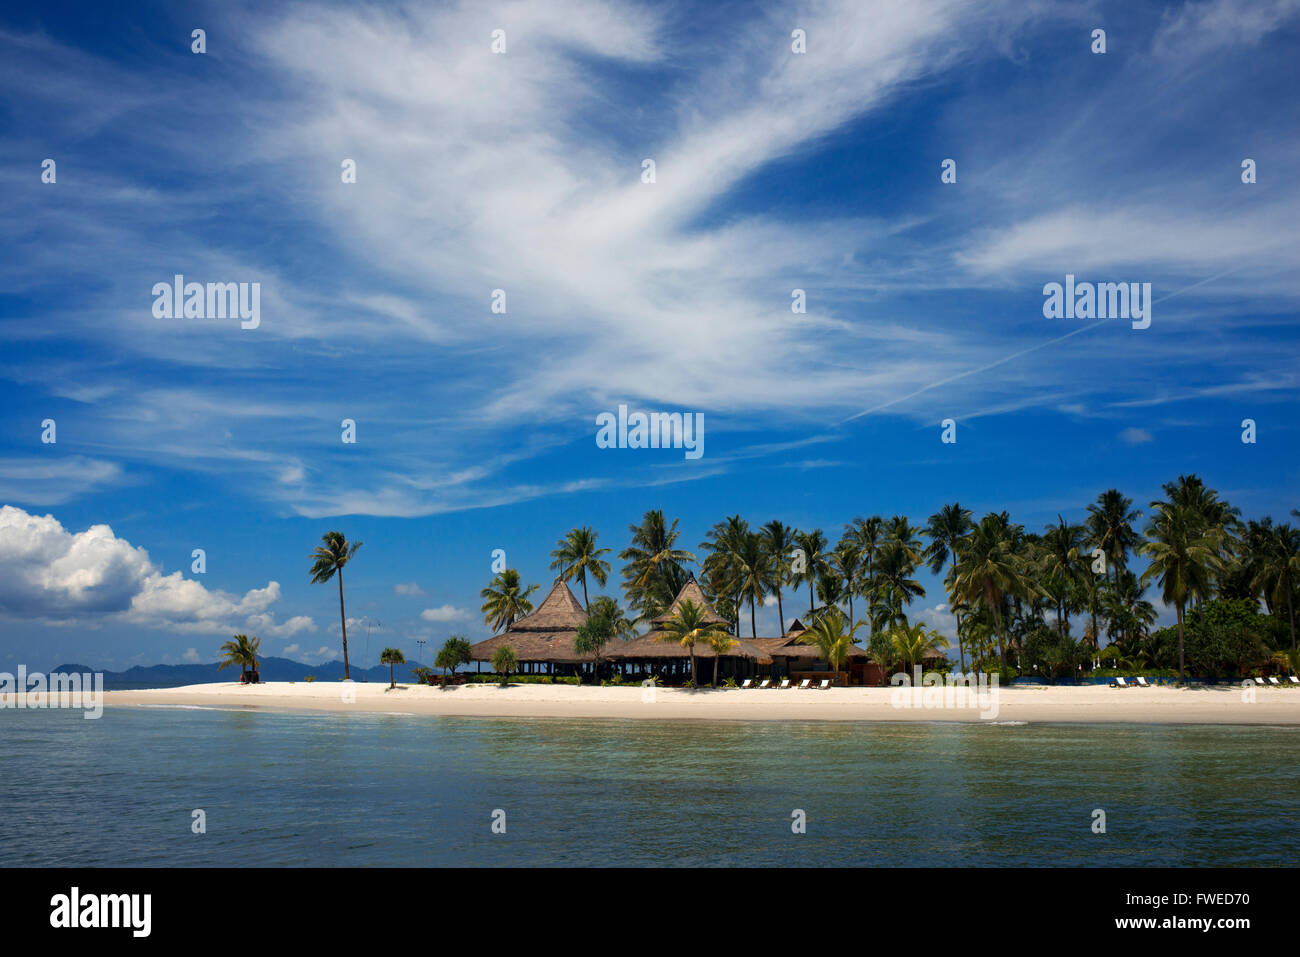 Hotel on a palm-lined beach, Koh Mook Sivalai Beach Resort Hotel, island of Ko Muk or , Thailand, Southeast Asia, - Stock Image